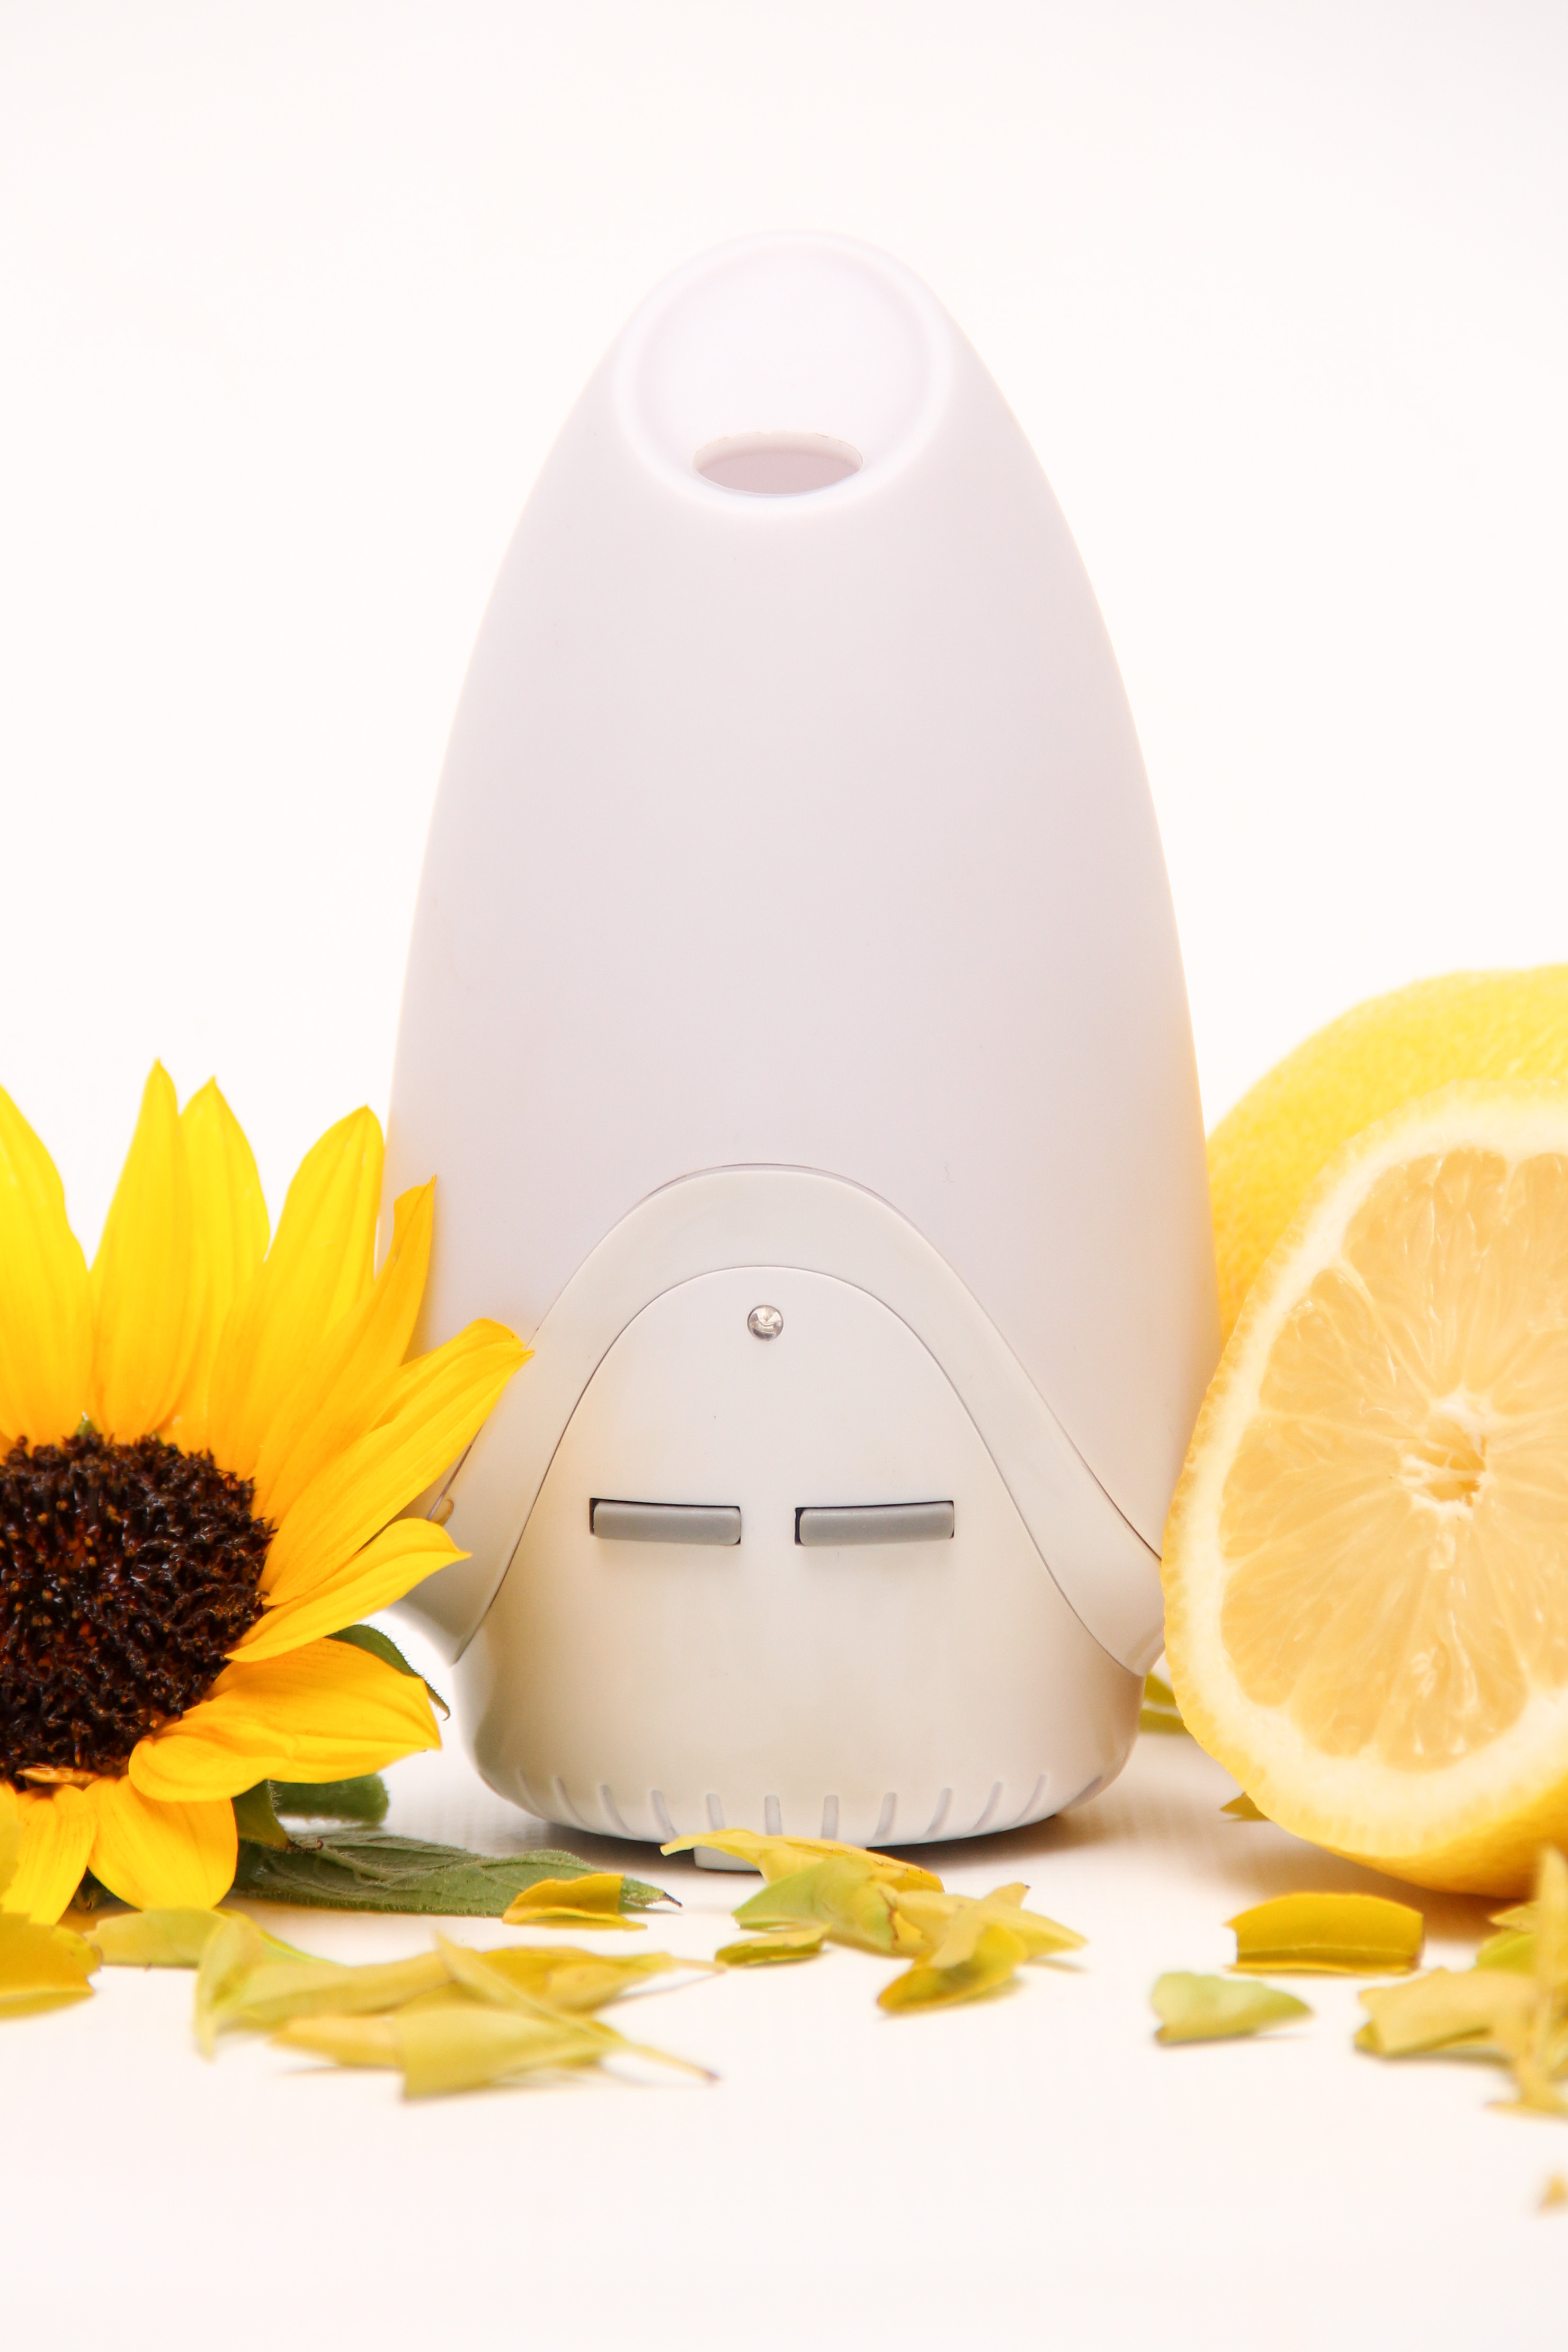 ultrasonic-essential-oil-car-diffuser